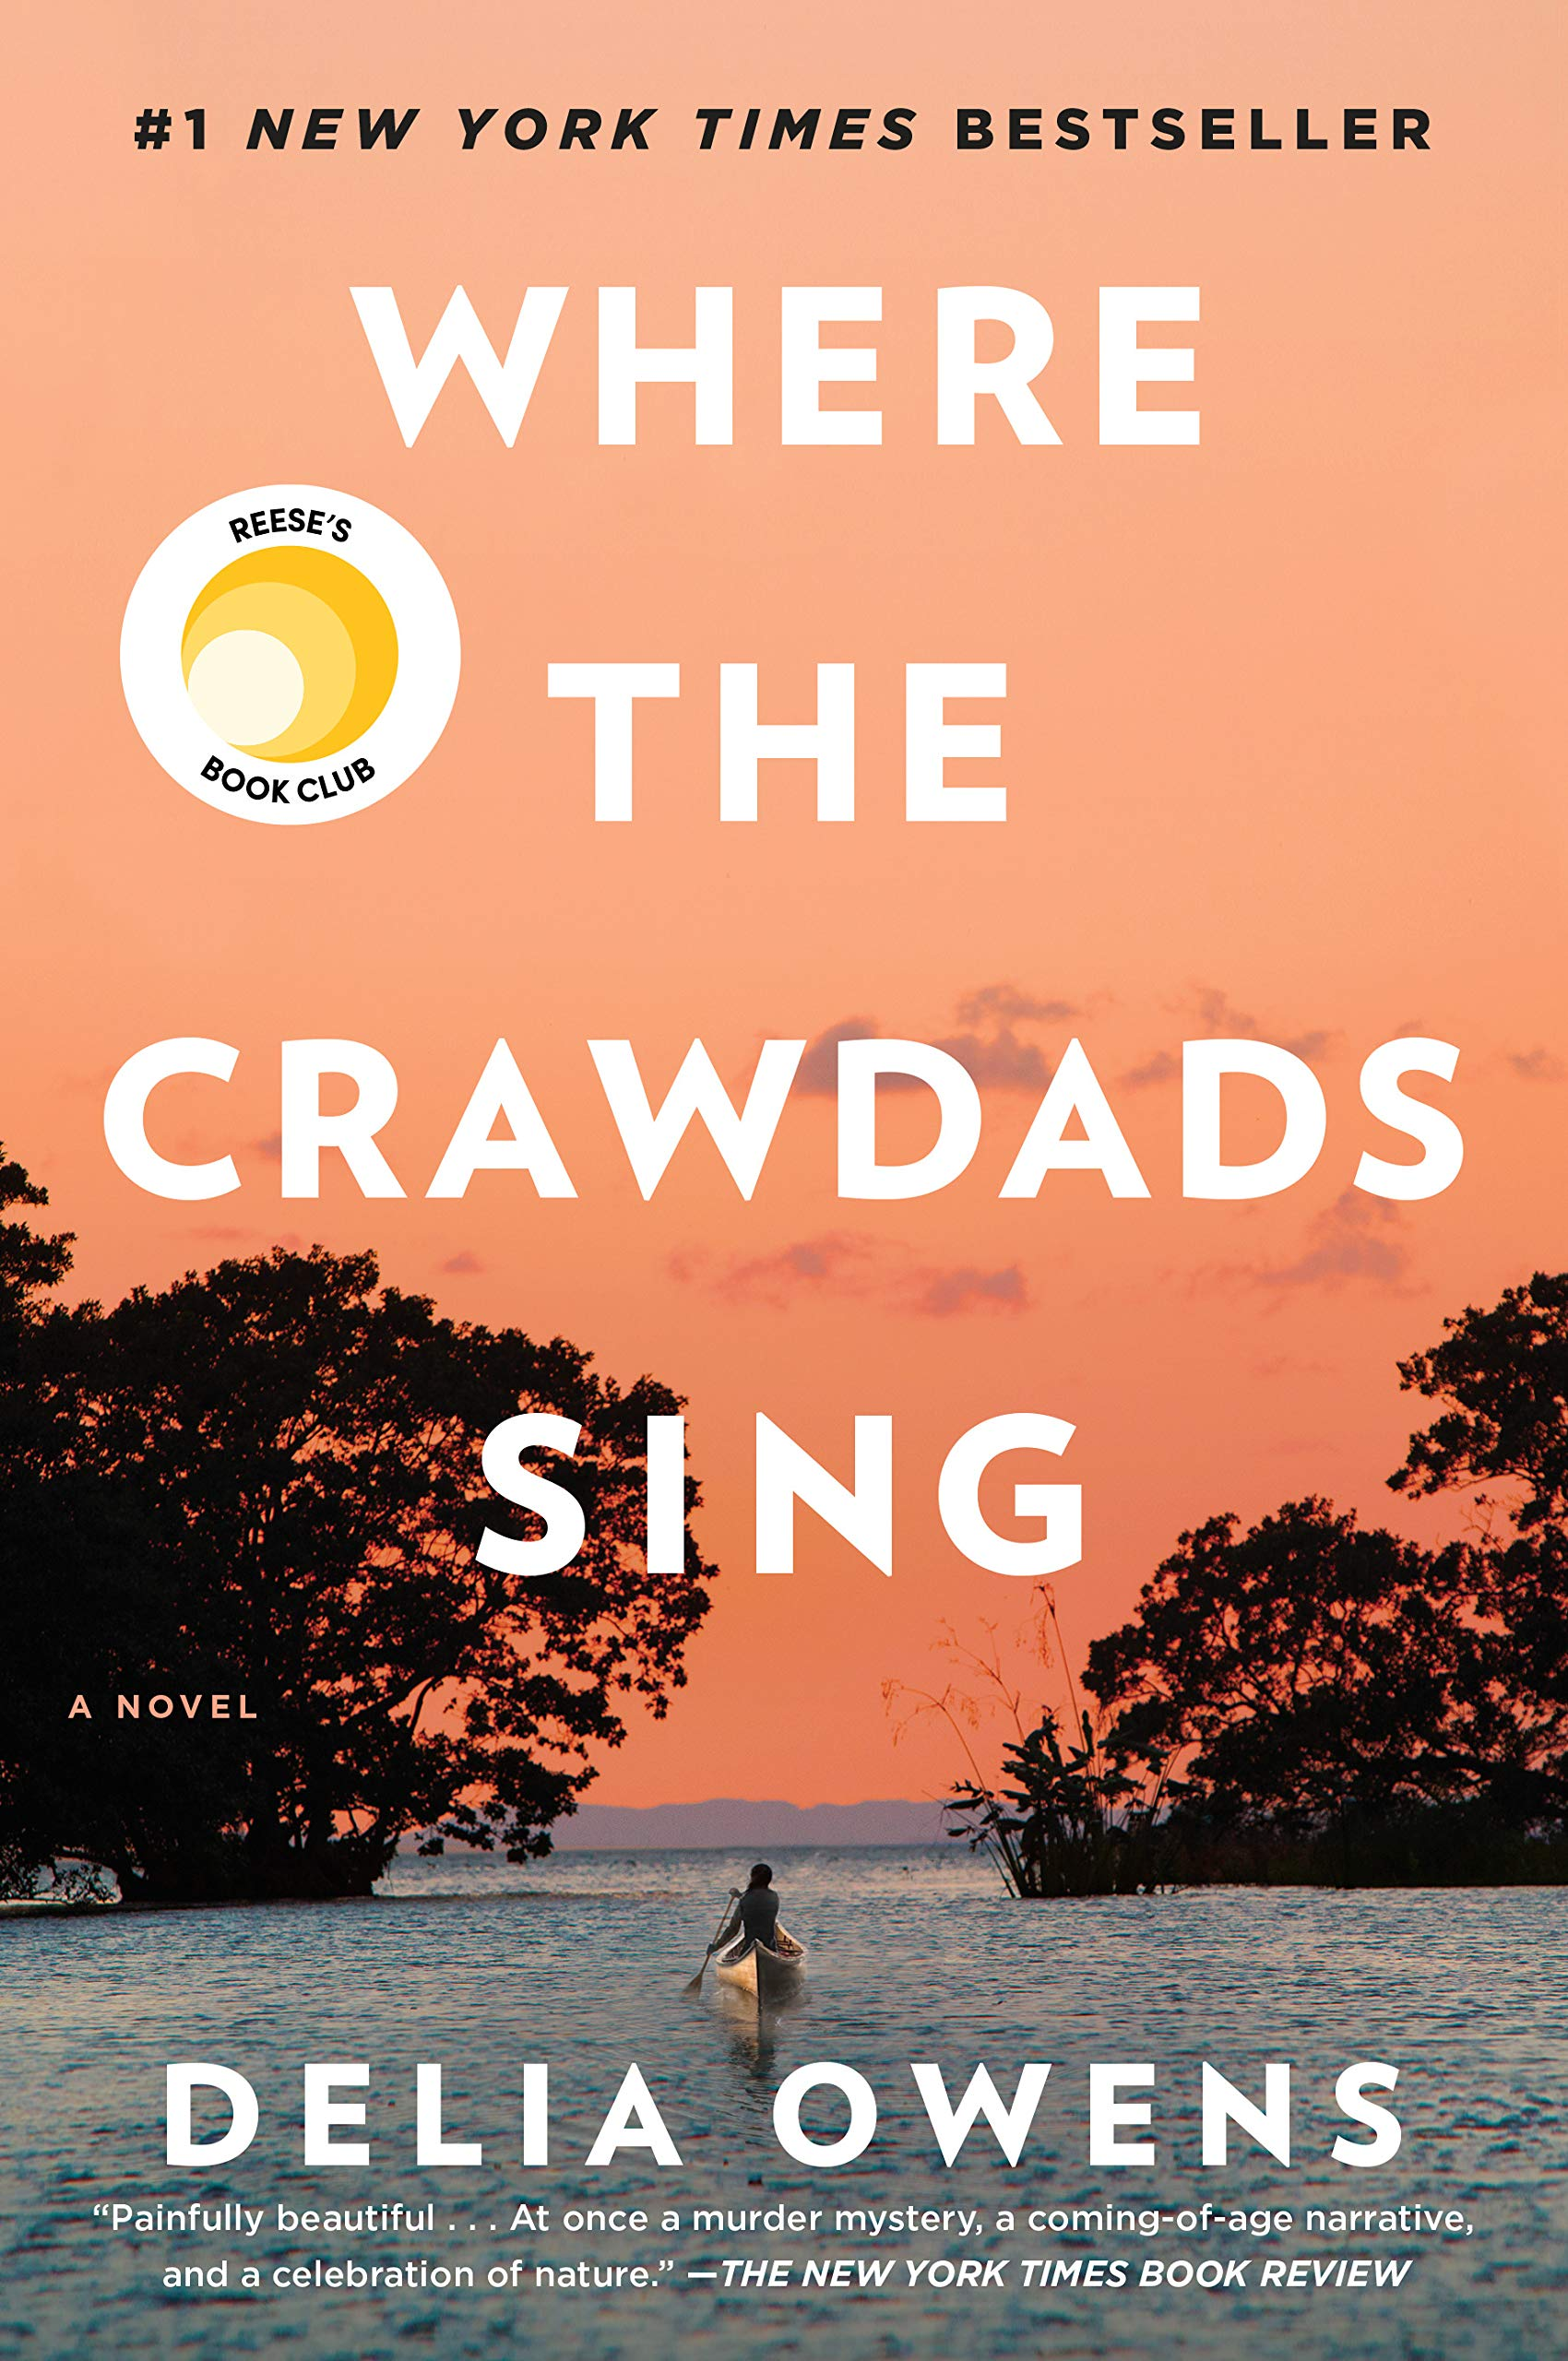 Where the crawdads sing .jpg